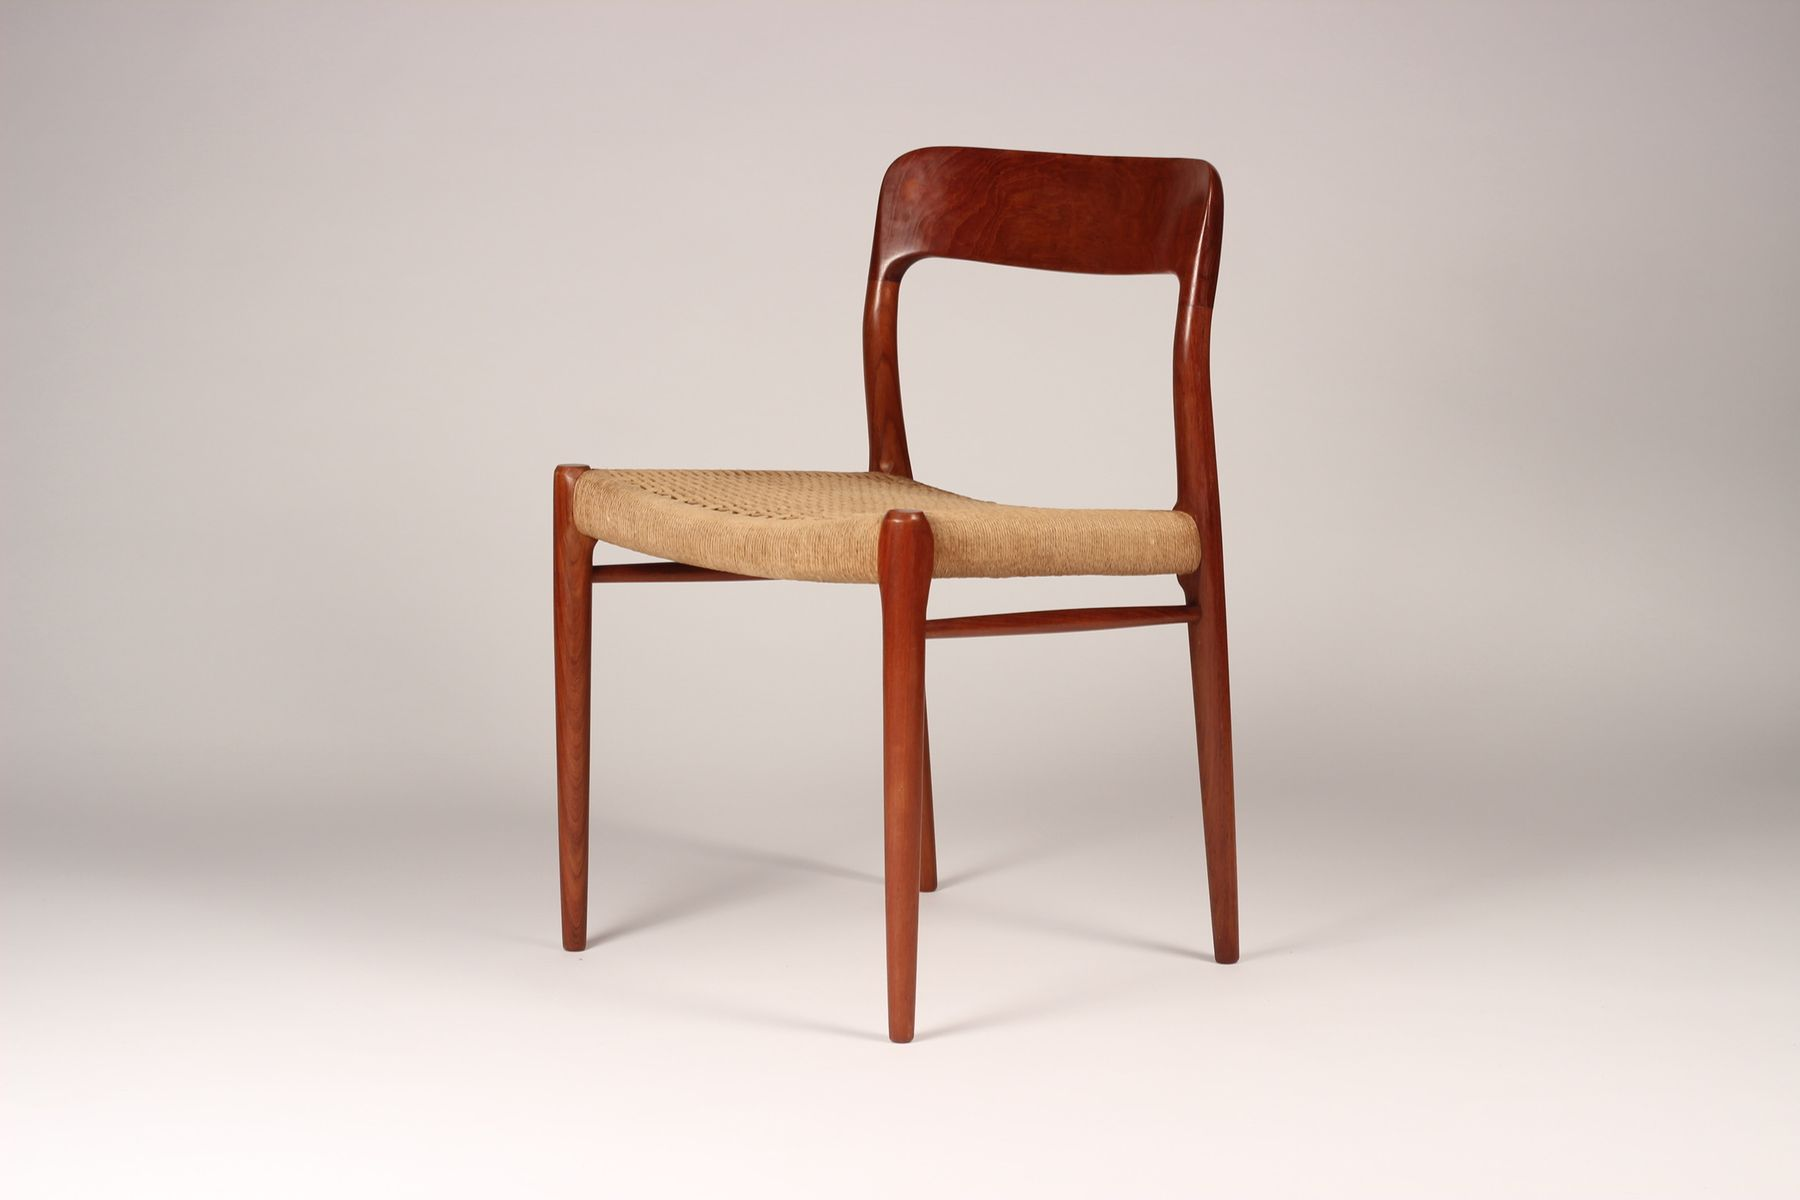 Model 75 Mid Century Dining Chairs By Niels Otto Møller For J.L. Møllers  Møbelfabrik, 1960s, Set Of 6